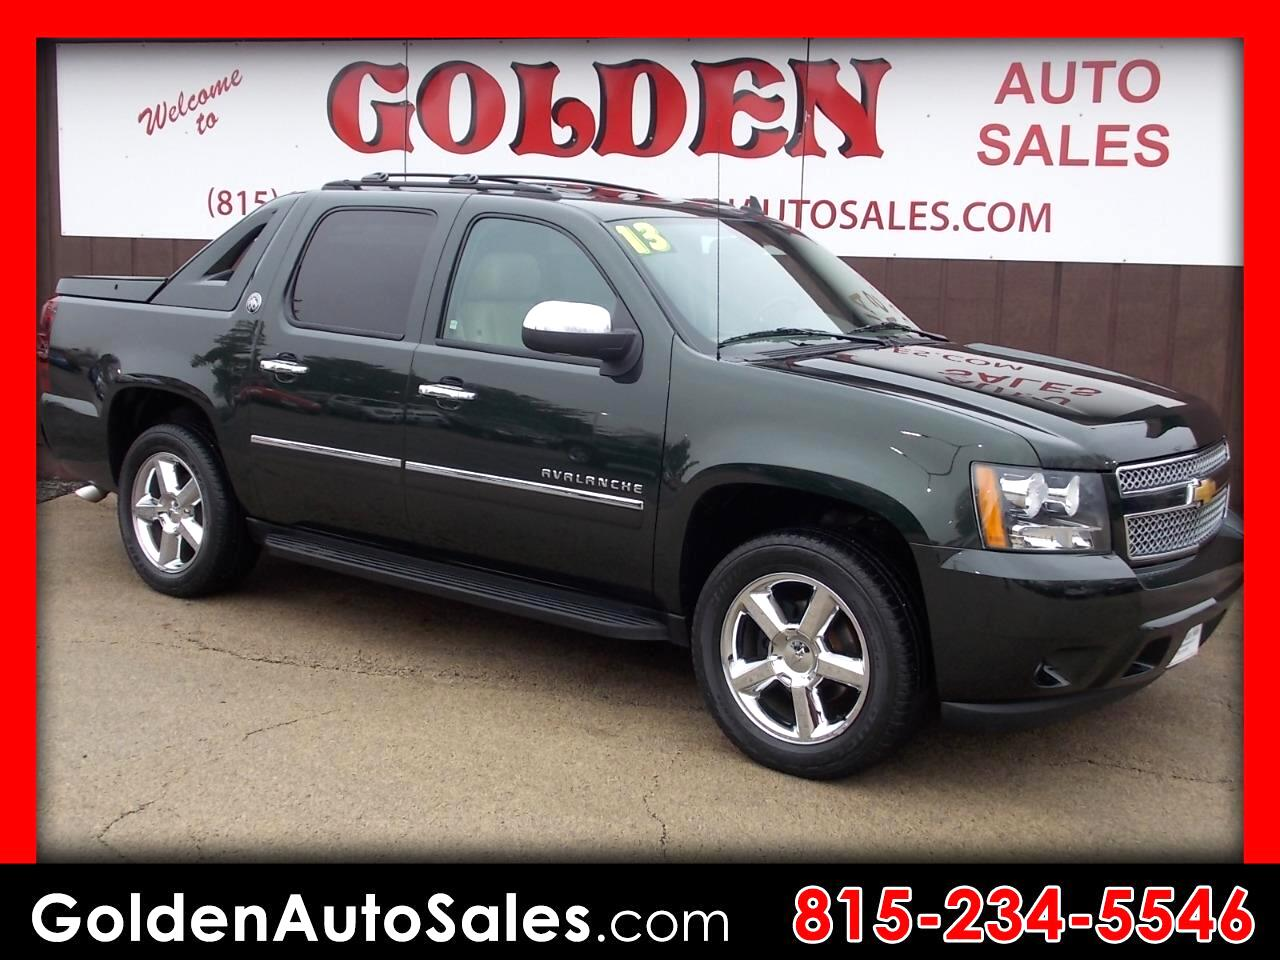 2013 Chevrolet Avalanche LTZ Black Diamond 4WD